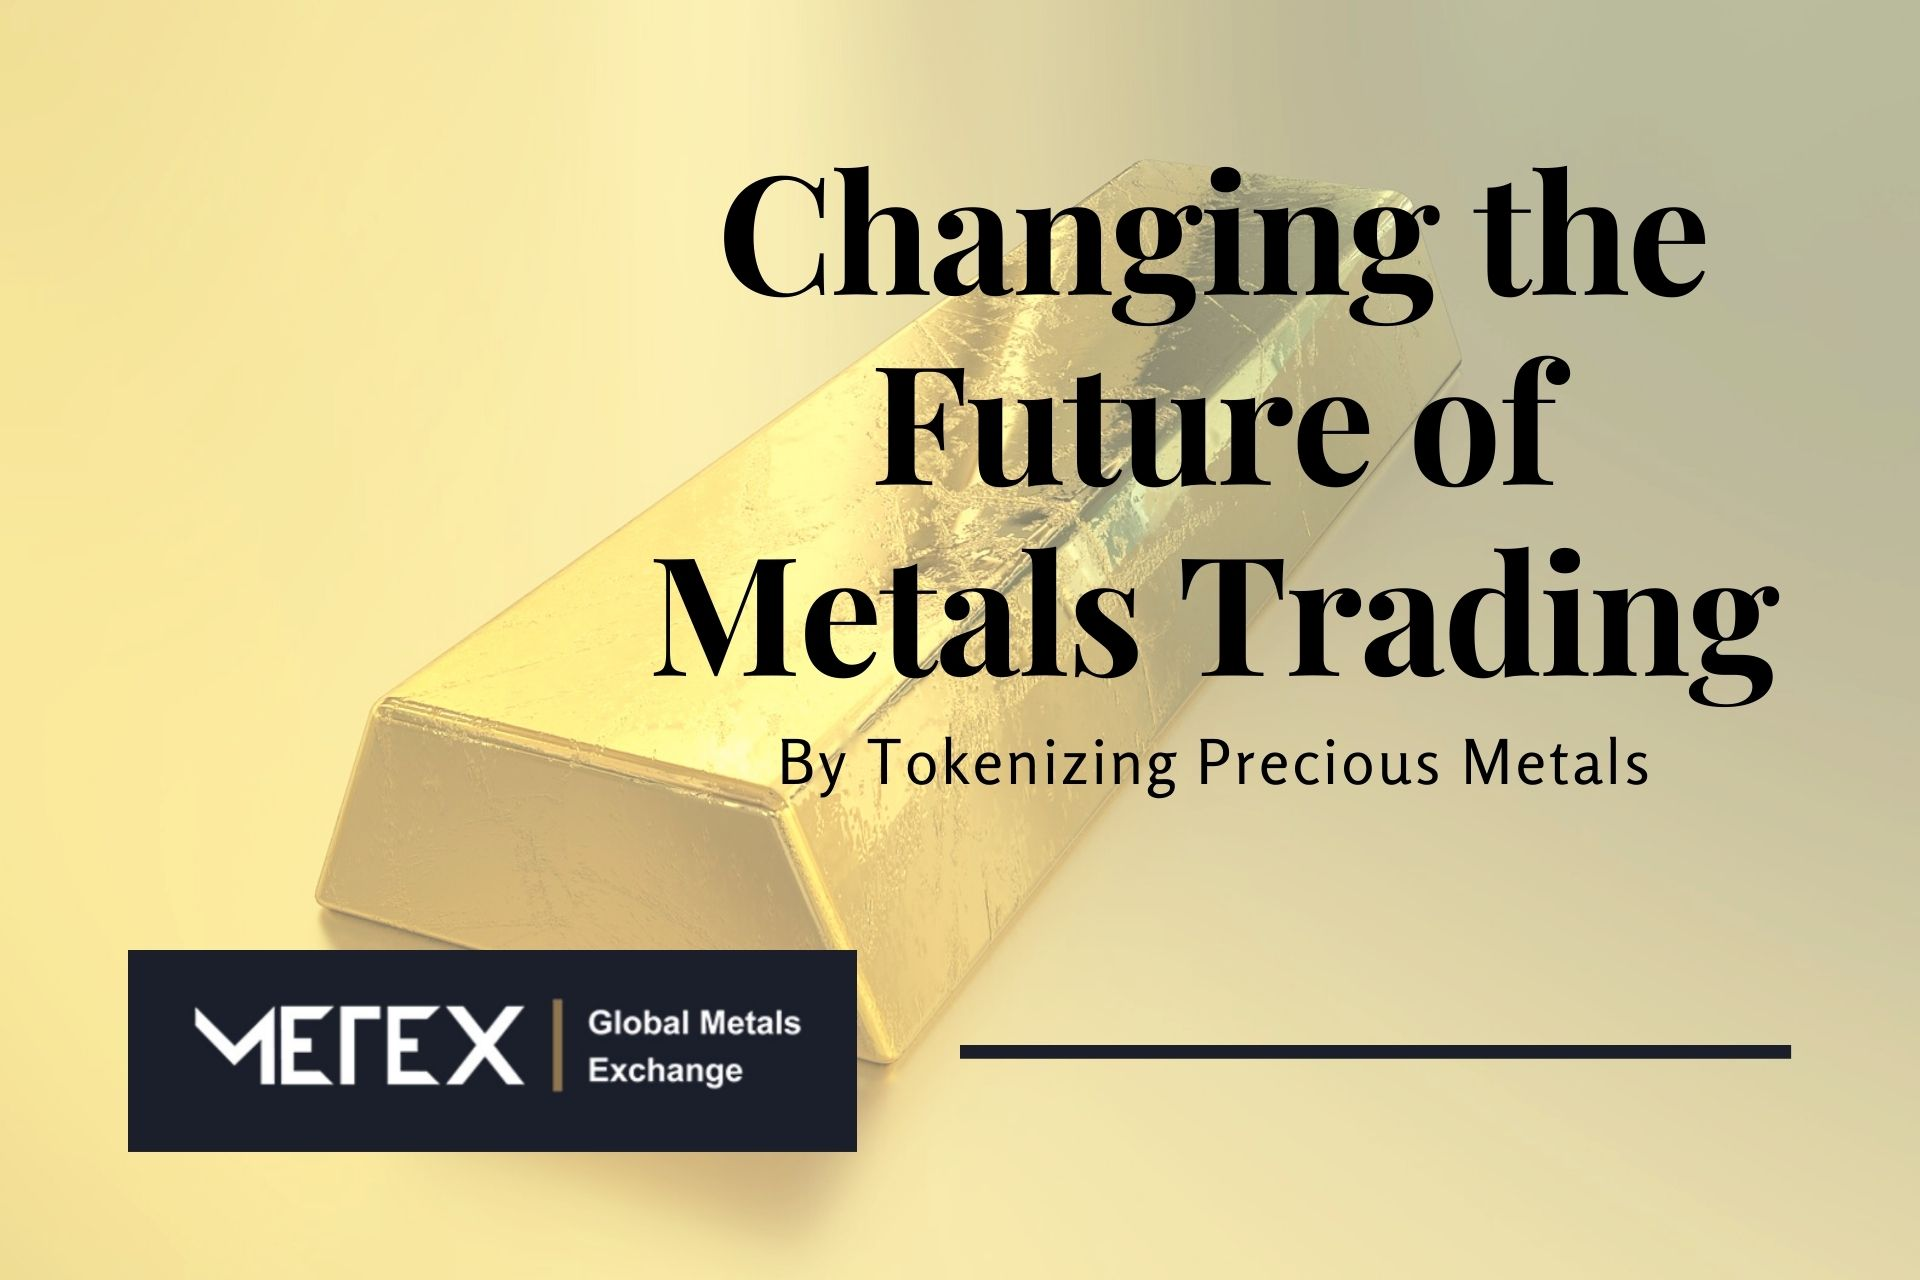 Metex Exchange – Changing the Future of Metals Trading By Tokenizing Precious Metals